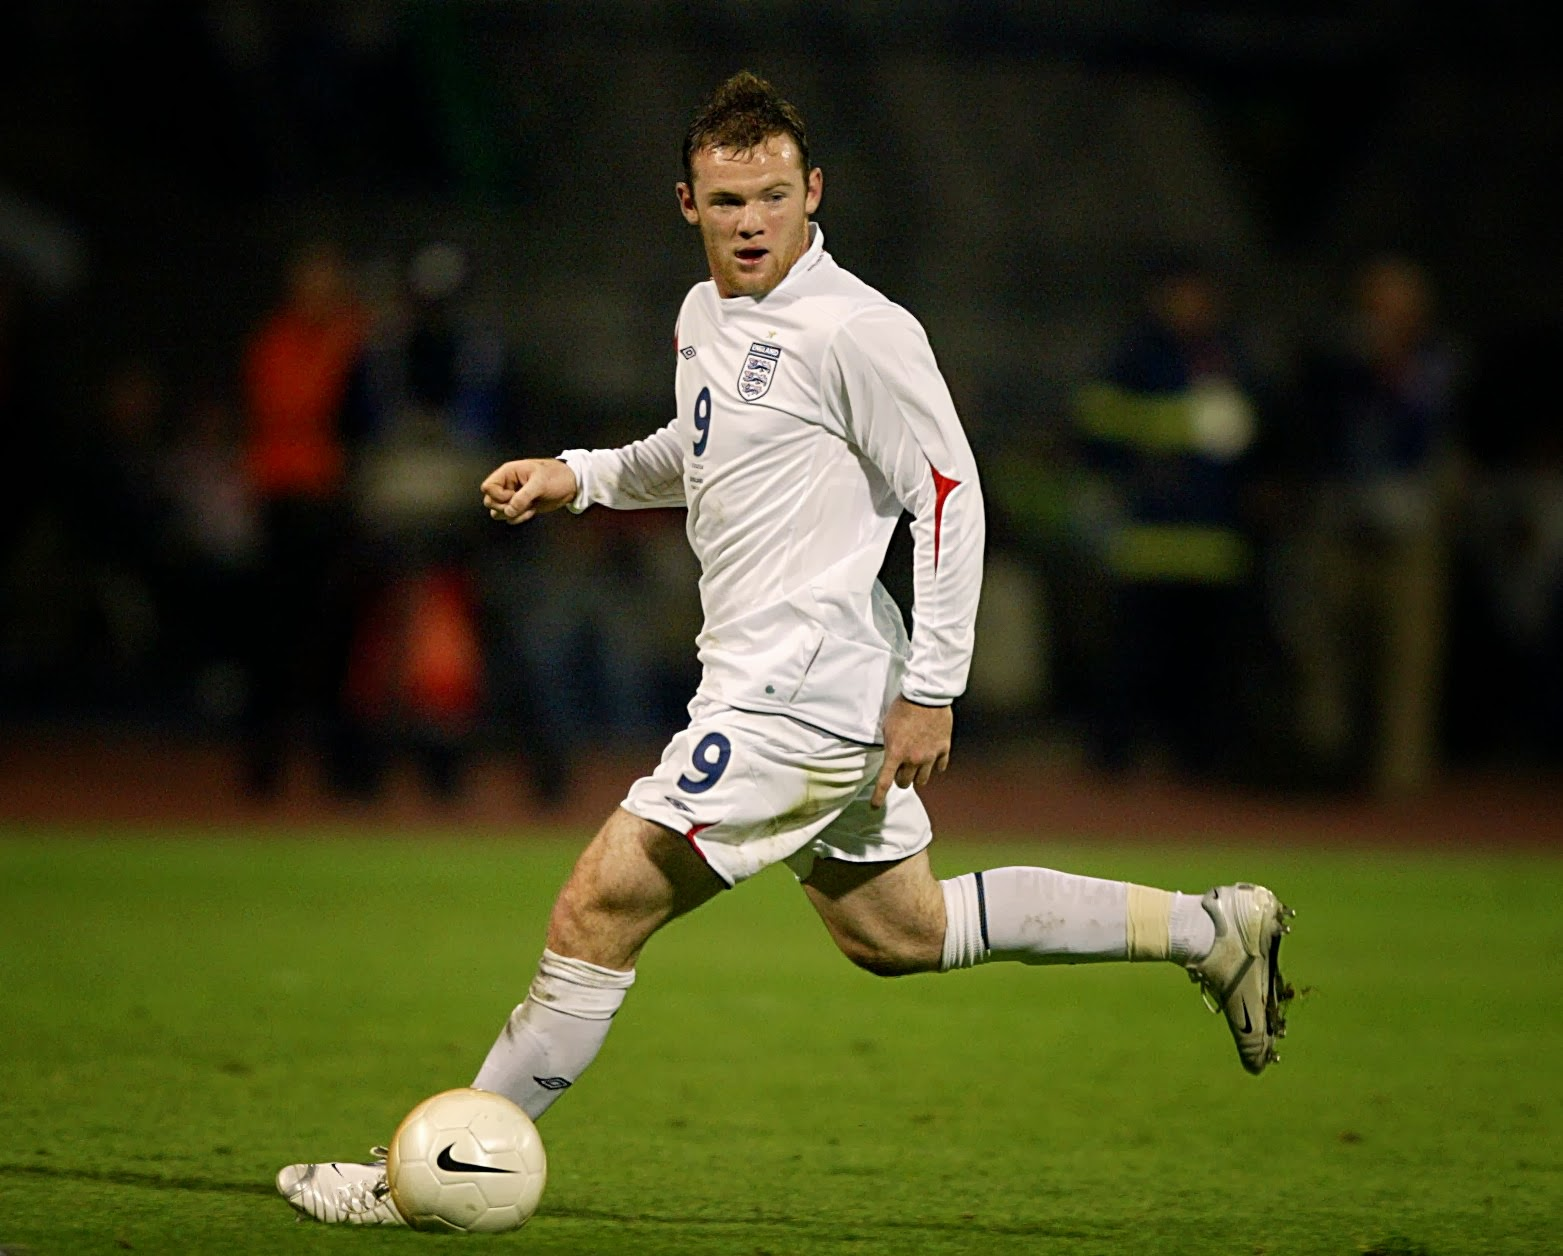 Wayne Rooney Debut Football England s All Time Best International Players The Ace